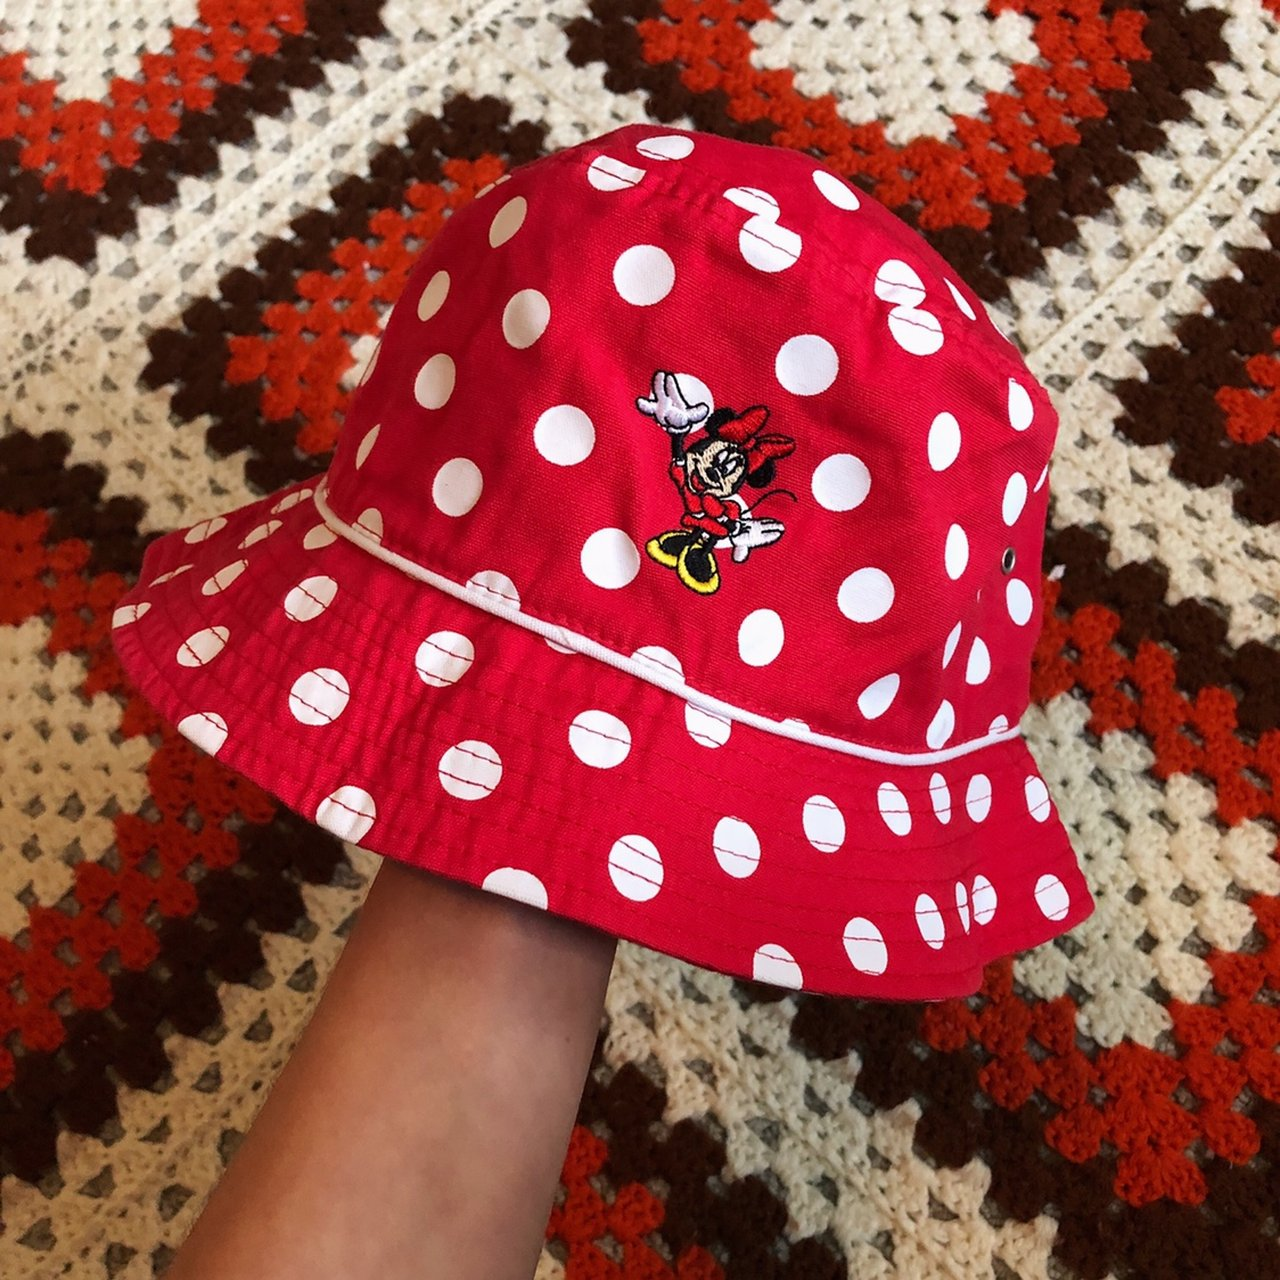 Minnie Mouse Bucket Hat 🍄 90 s vintage red and white Walt a - Depop d65a0835339